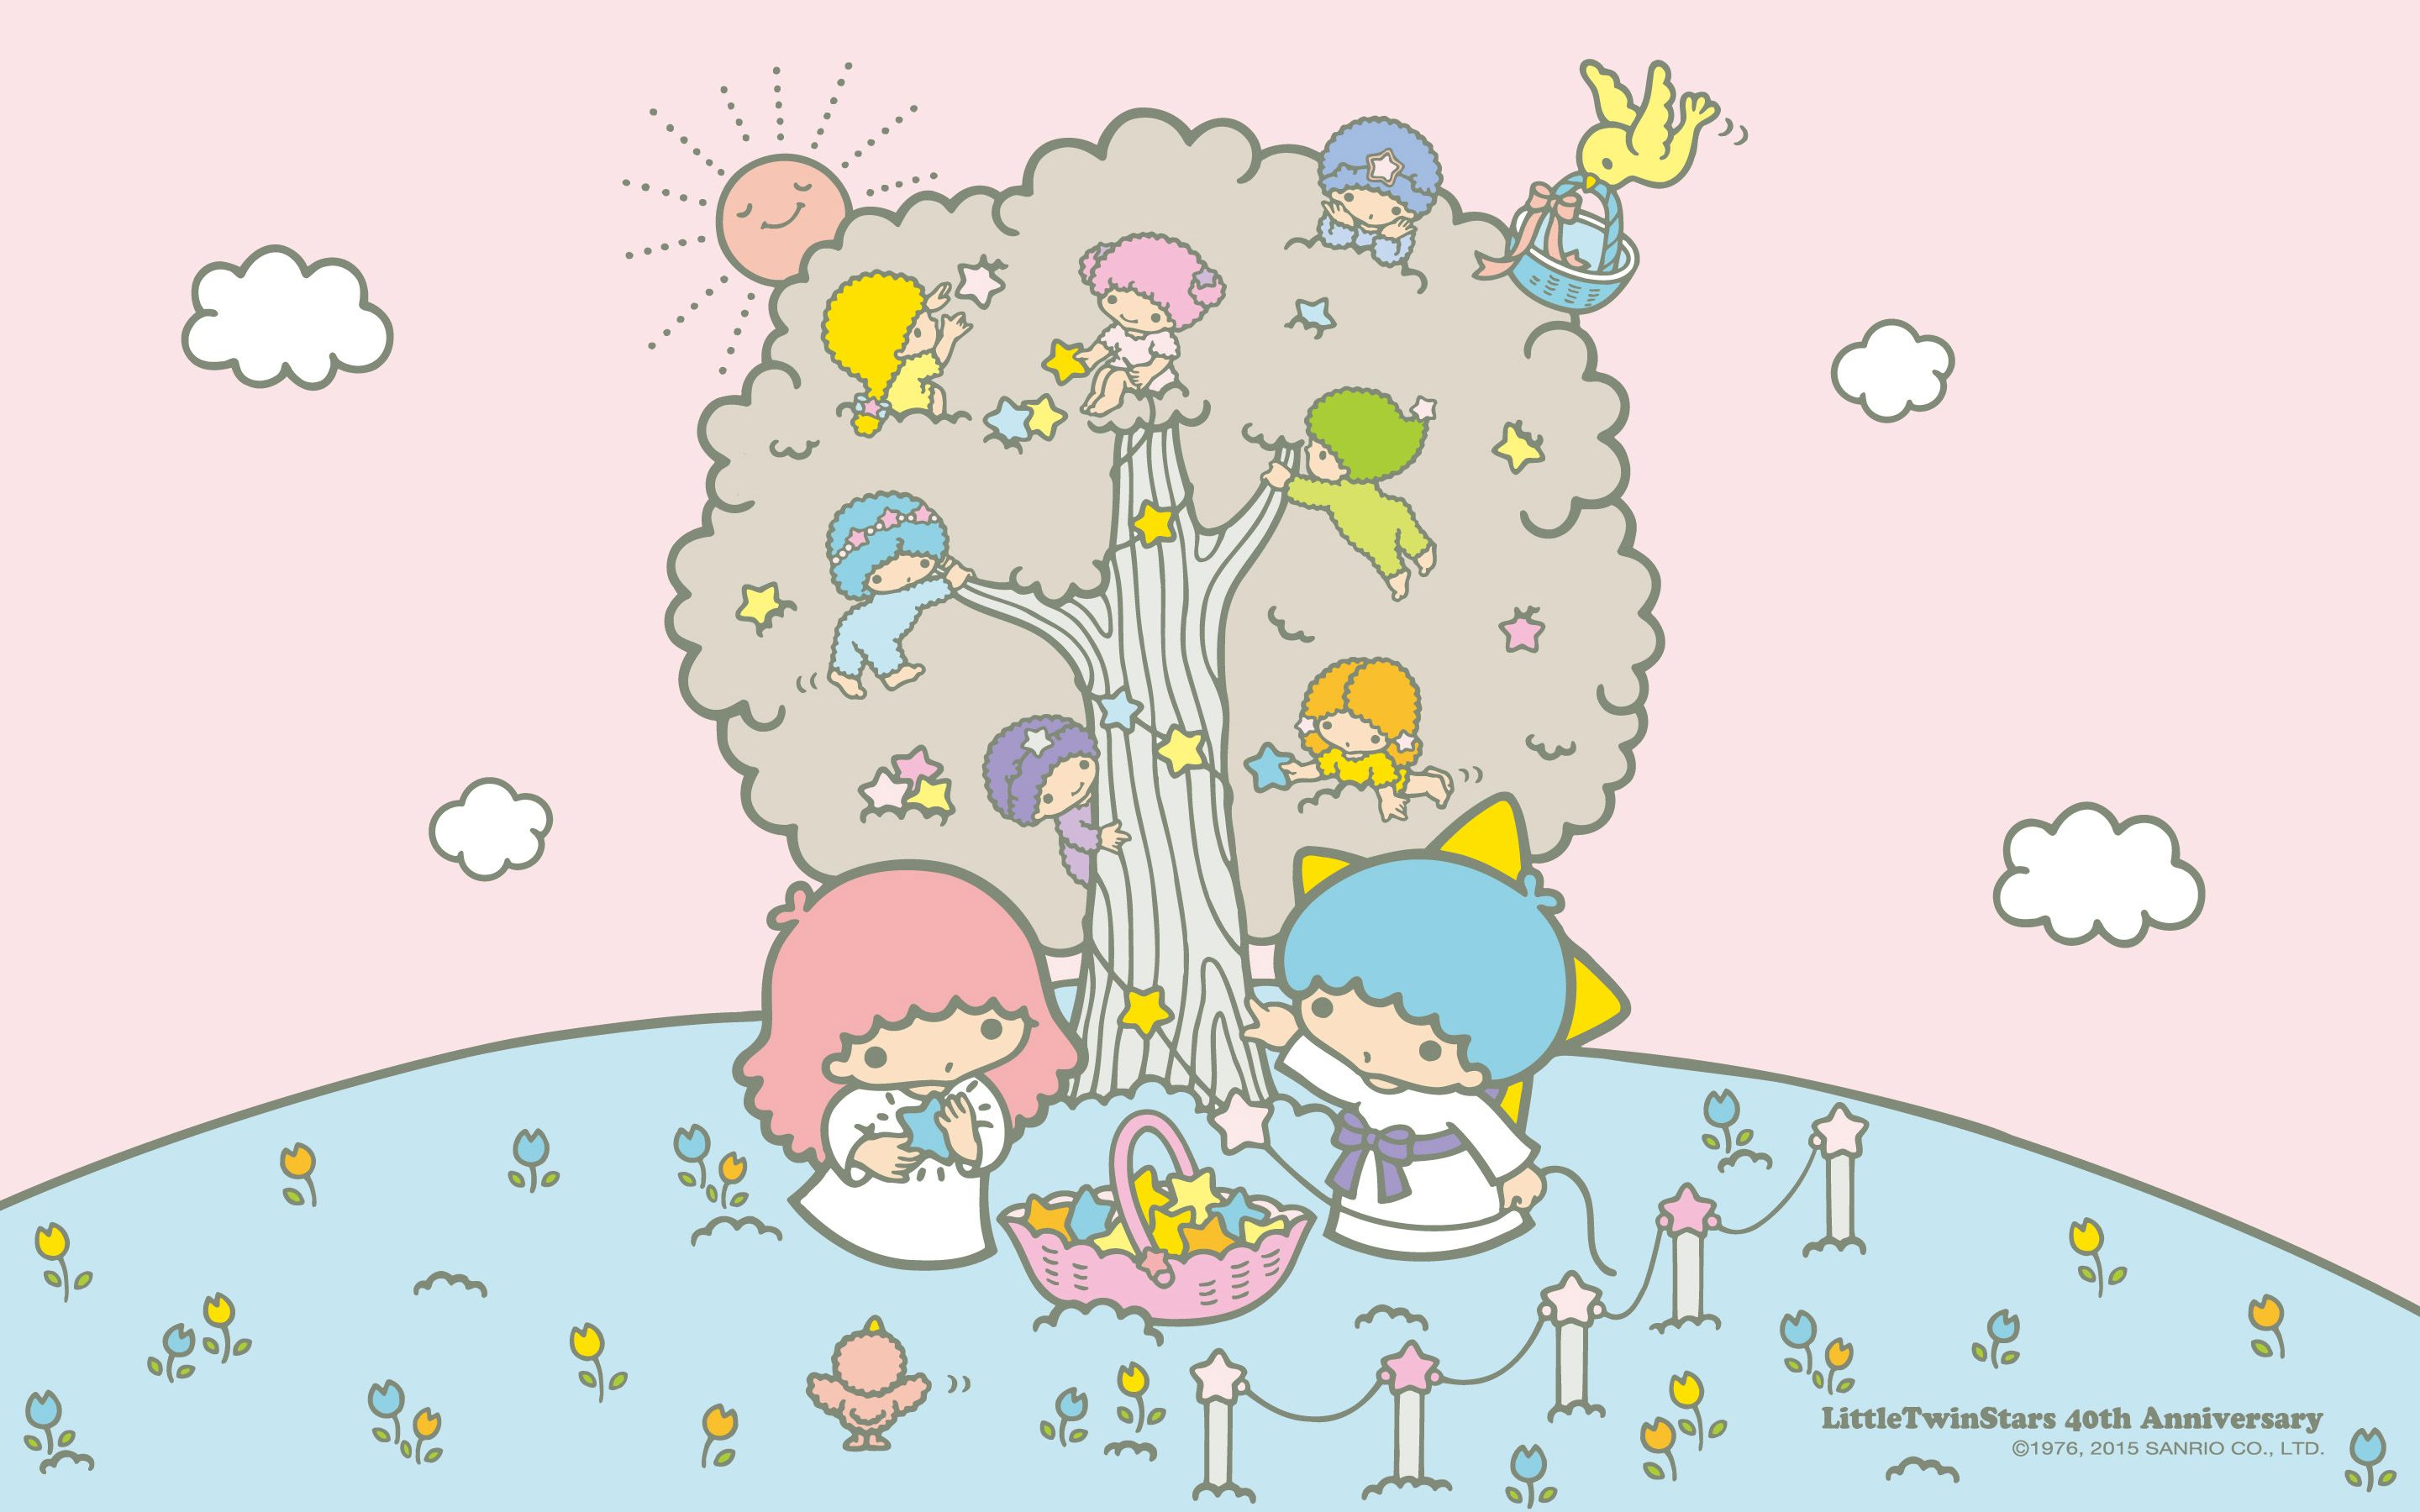 【Android iPhone PC】Little Twin Stars Wallpaper 201503 三月桌布